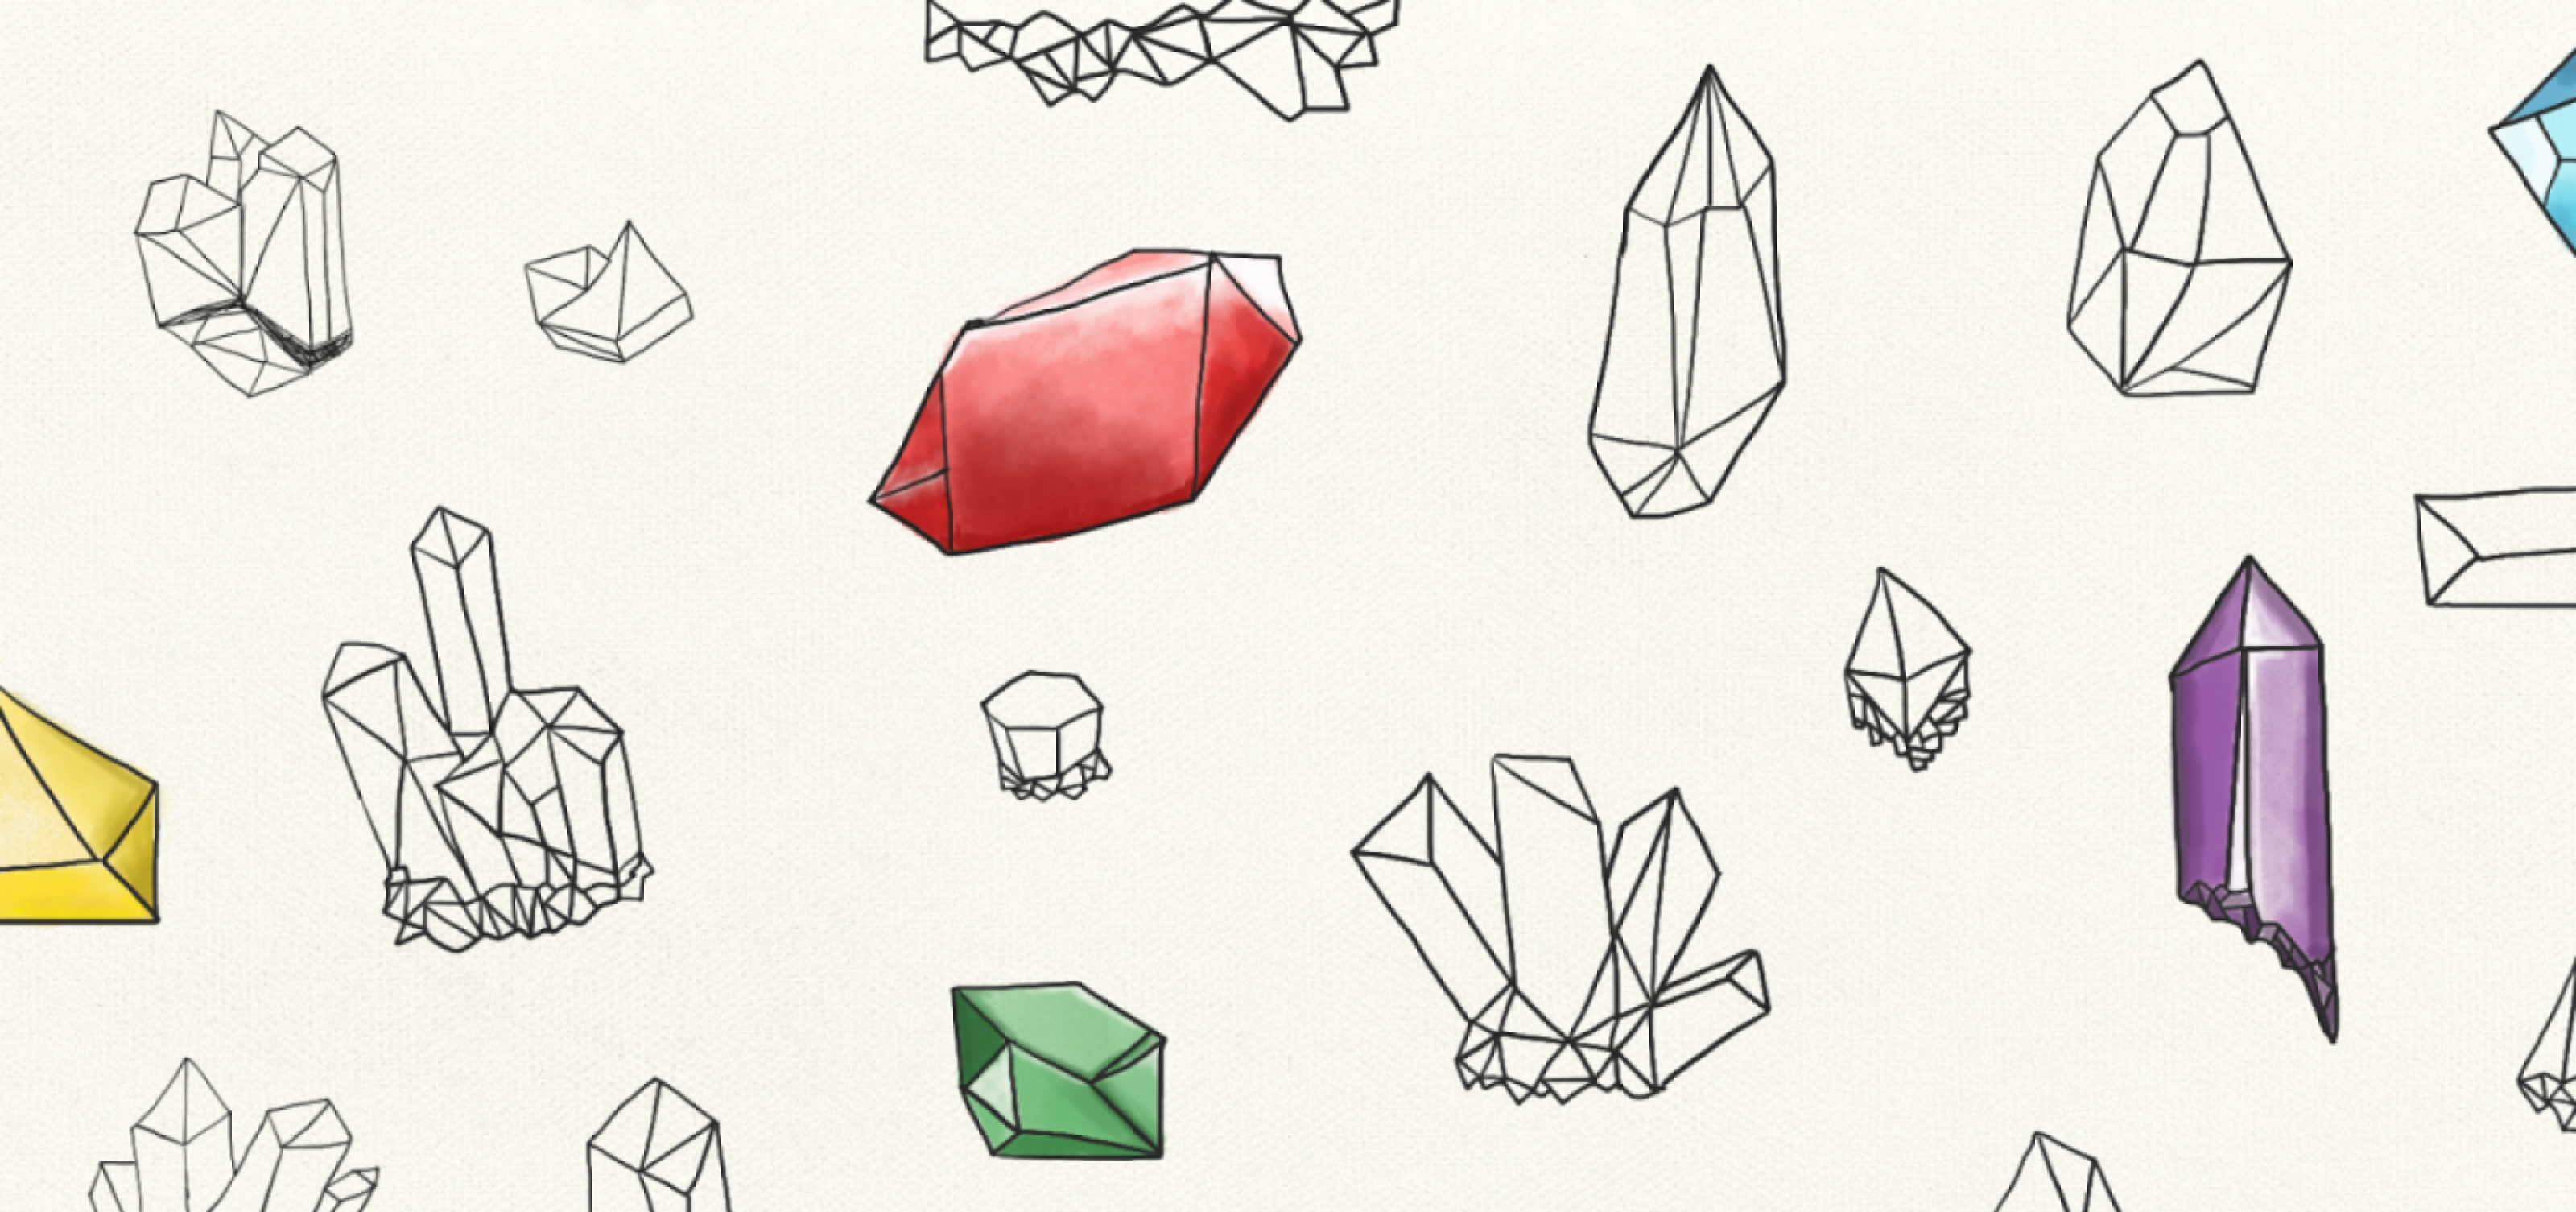 3200x1505 Crystal paradox Almost perfect structures made useful by tiny